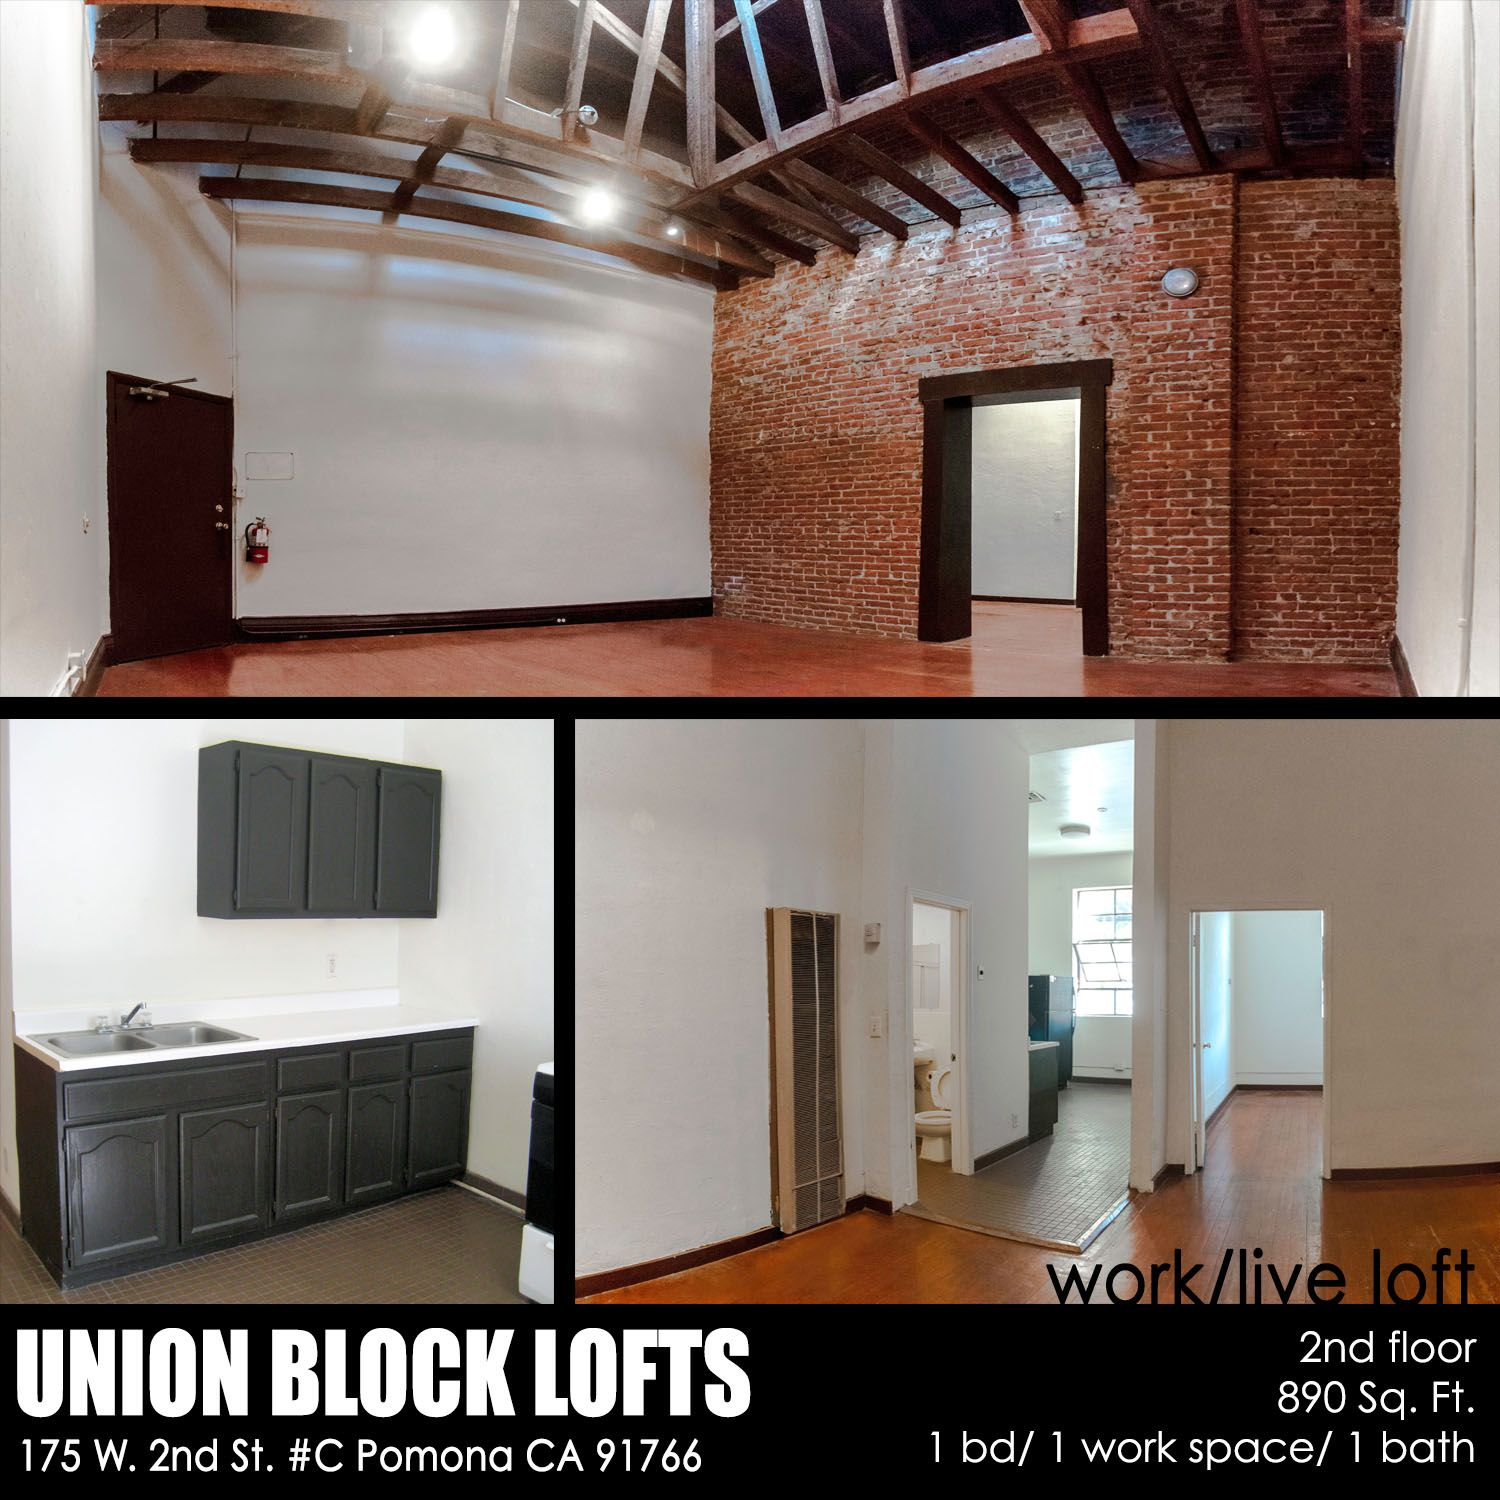 For Rent Live Work Loft In Pomona Arts Colony 890 Sq Ft 1bed 1bath Work Space 1 275 Month Leasing Inqui Lofts For Rent Live Work Lofts Property For Rent